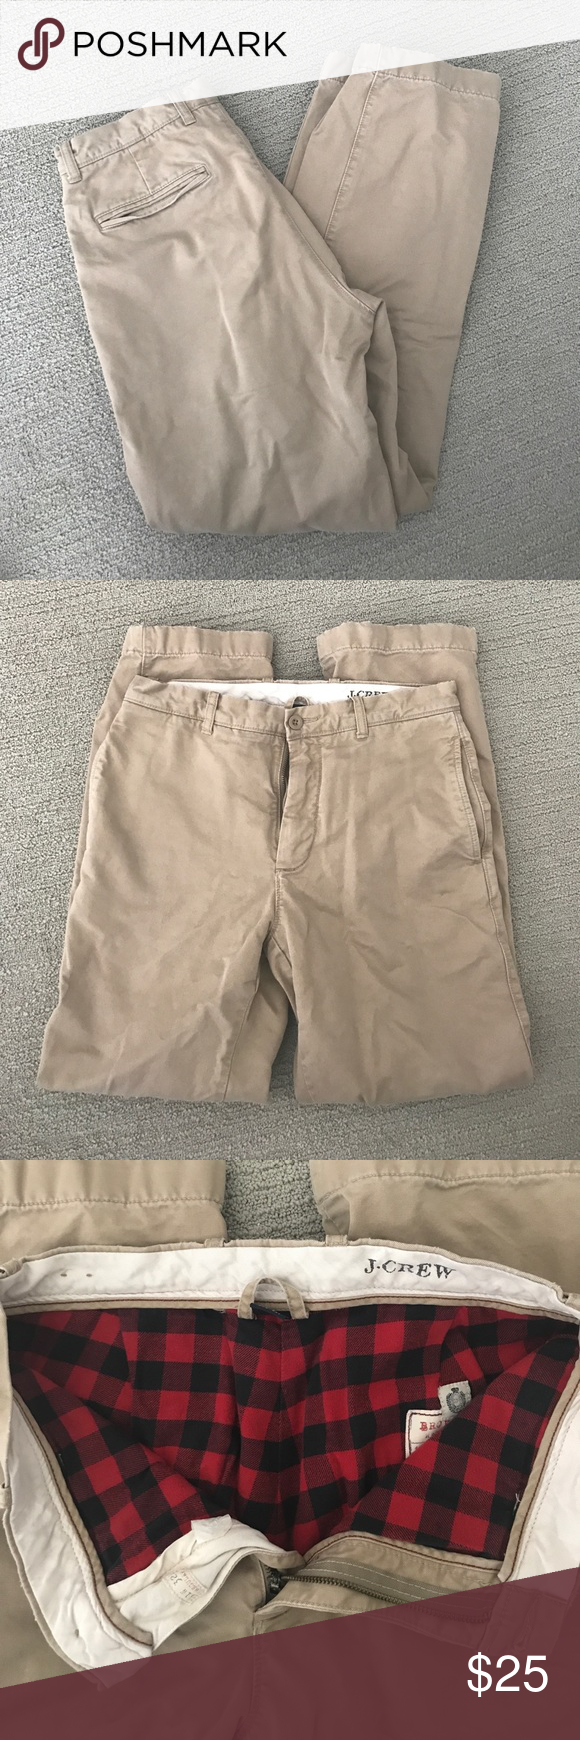 J crew lined winter khakis J crew chino khakis. Excellent condition. They are perfect for winter! Lined all the way down on the inside with a pajama feeling lining. Waist is a 31 and length is 32 J. Crew Pants Chinos & Khakis